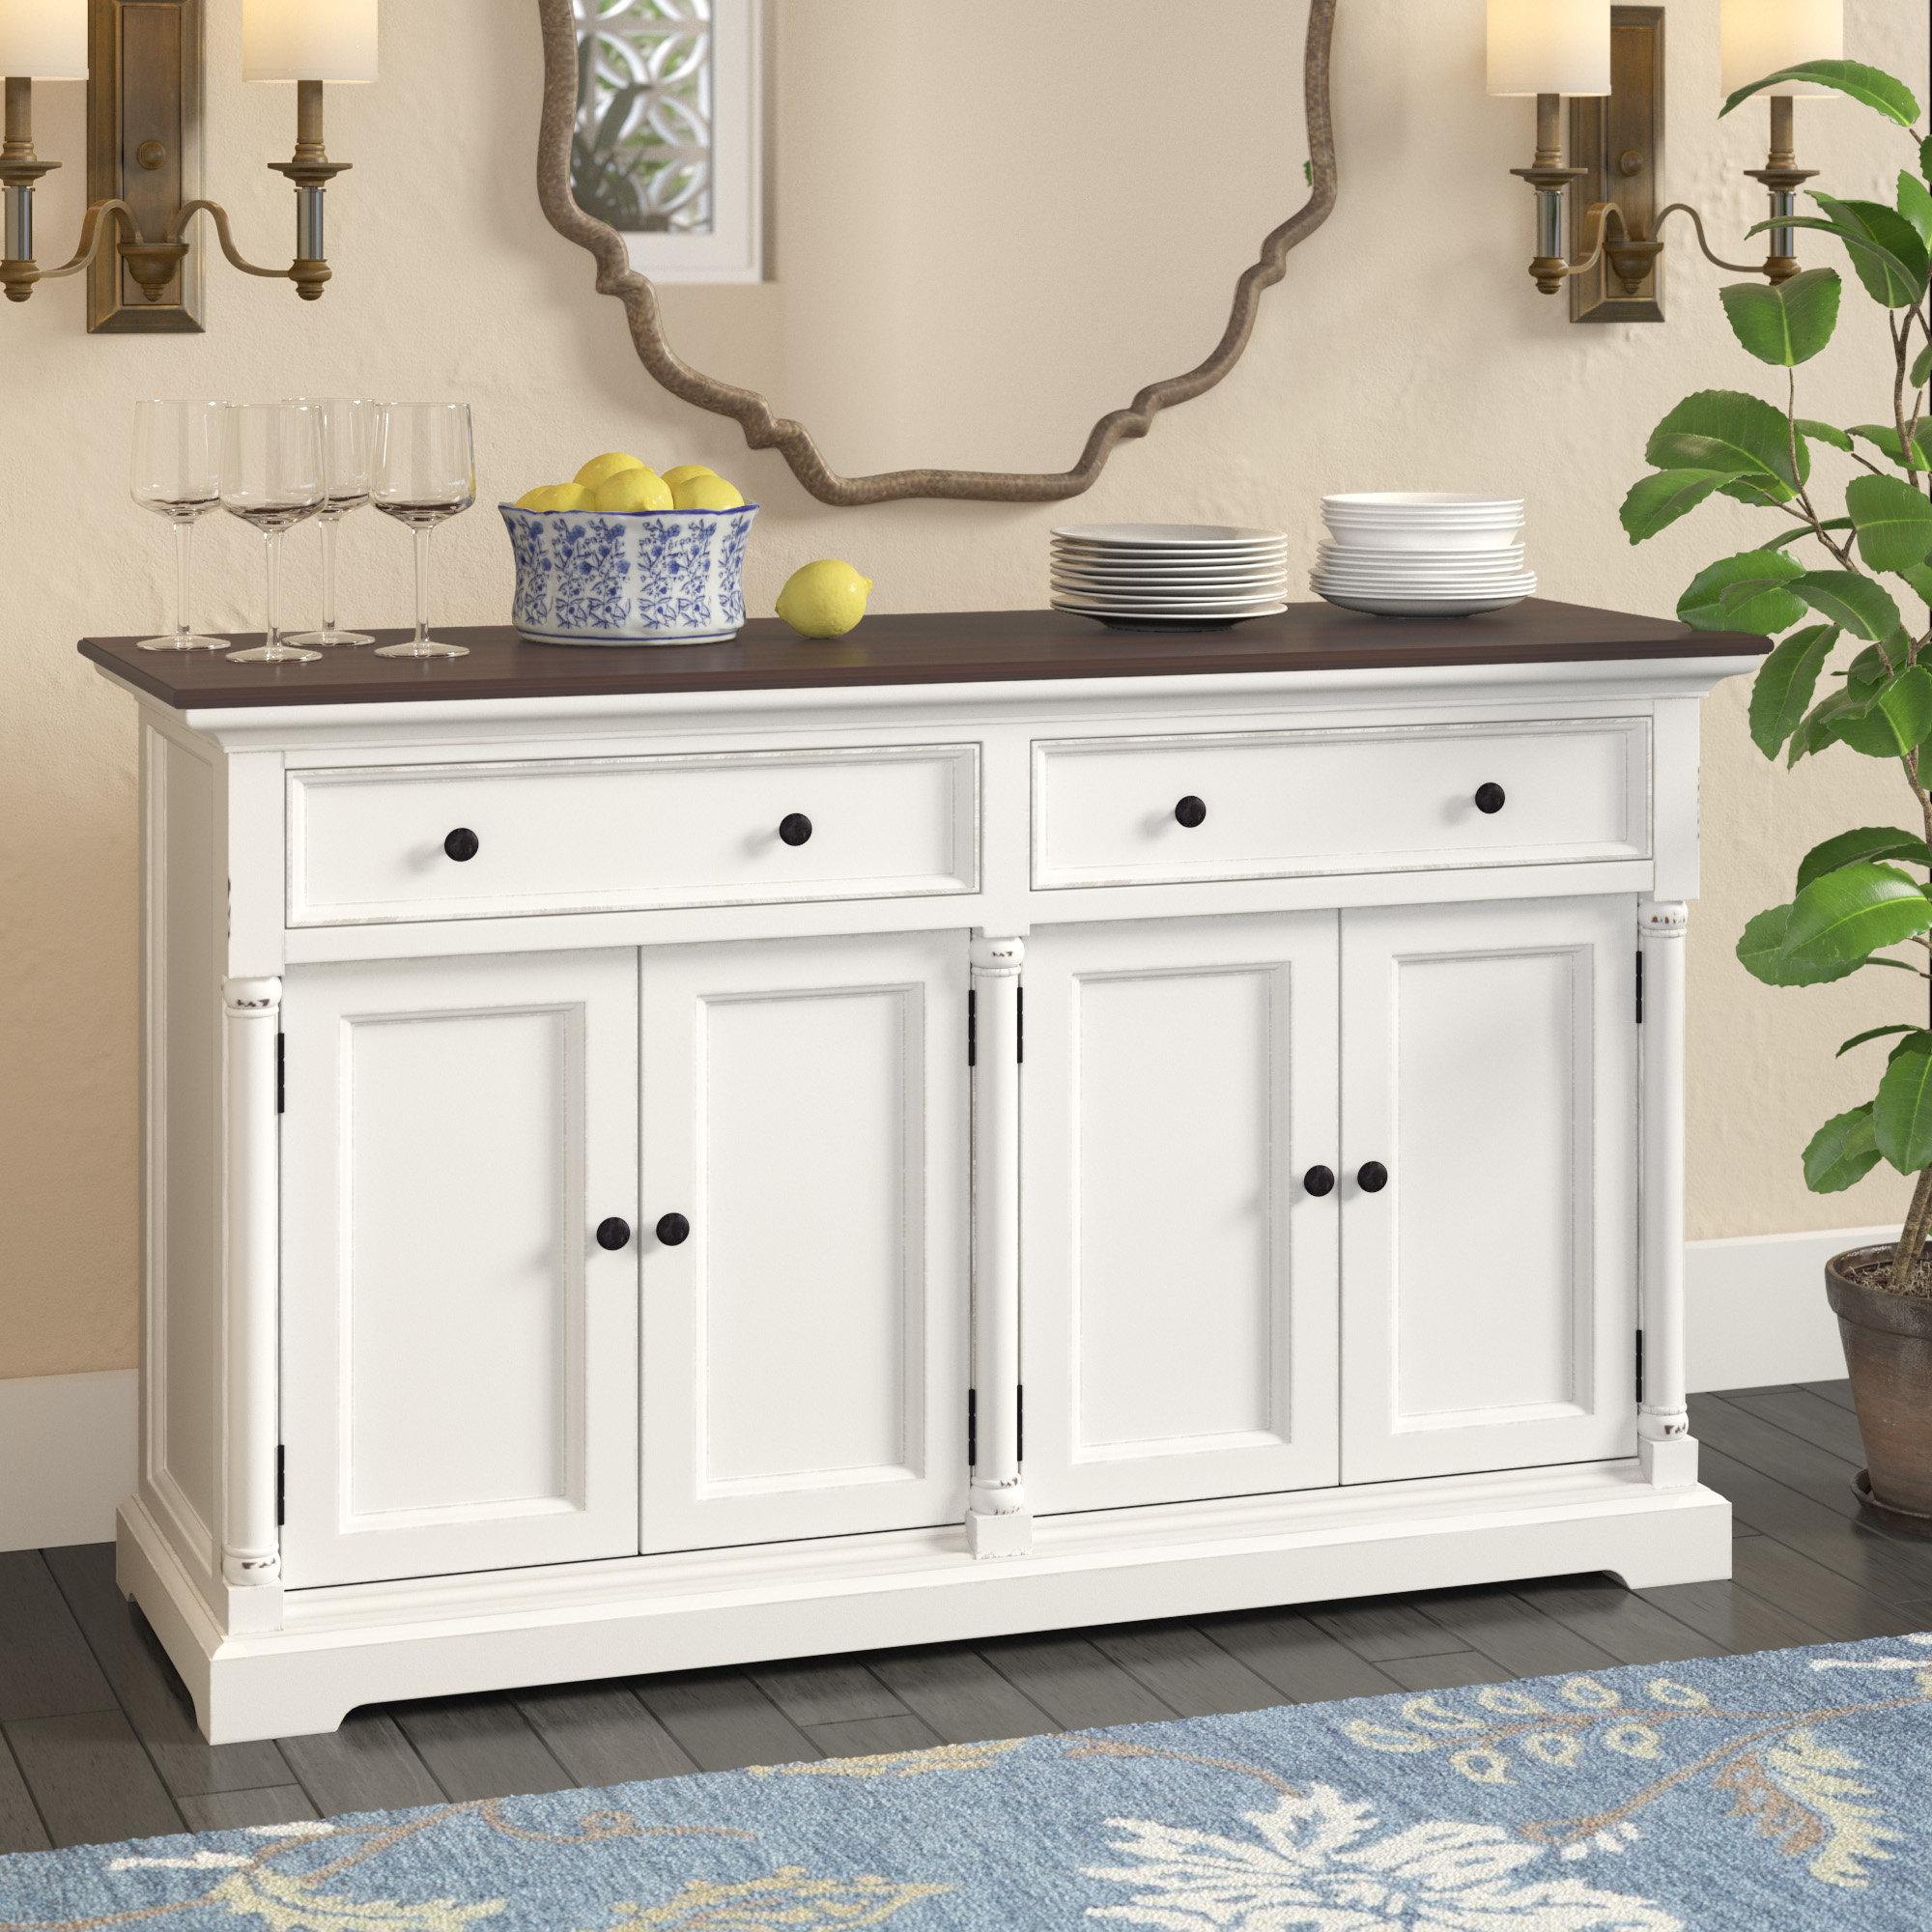 Farmhouse & Rustic Darby Home Co Sideboards & Buffets Throughout Widely Used Phyllis Sideboards (Gallery 7 of 20)